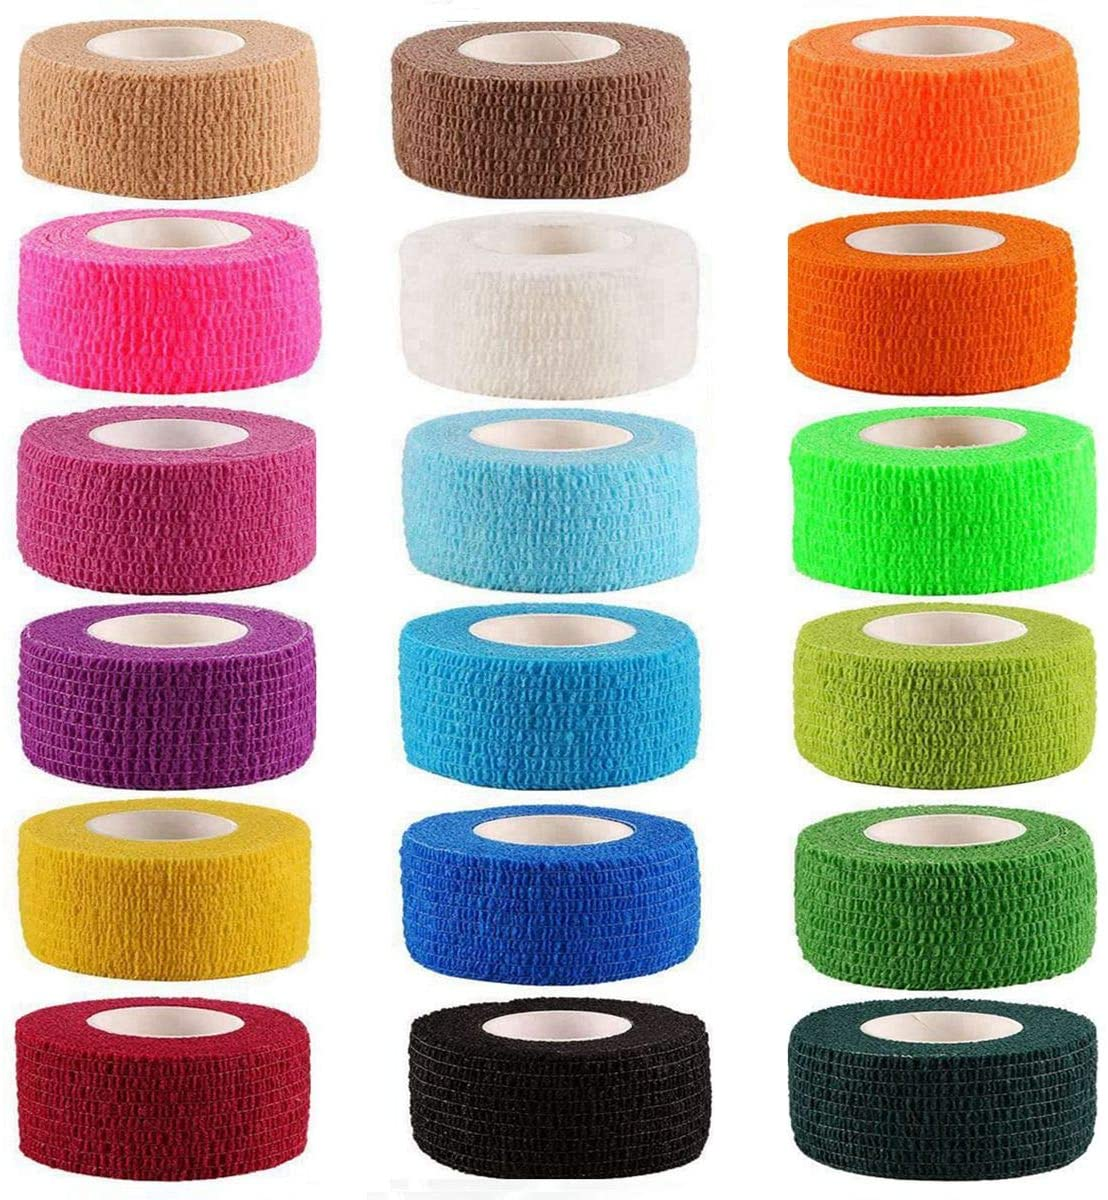 18 Color 1 Inches Self Adherent Cohesive Wrap Bandages First Aid Tape Elastic Self Adhesive Tape Vet Wrap for Cat, Dog